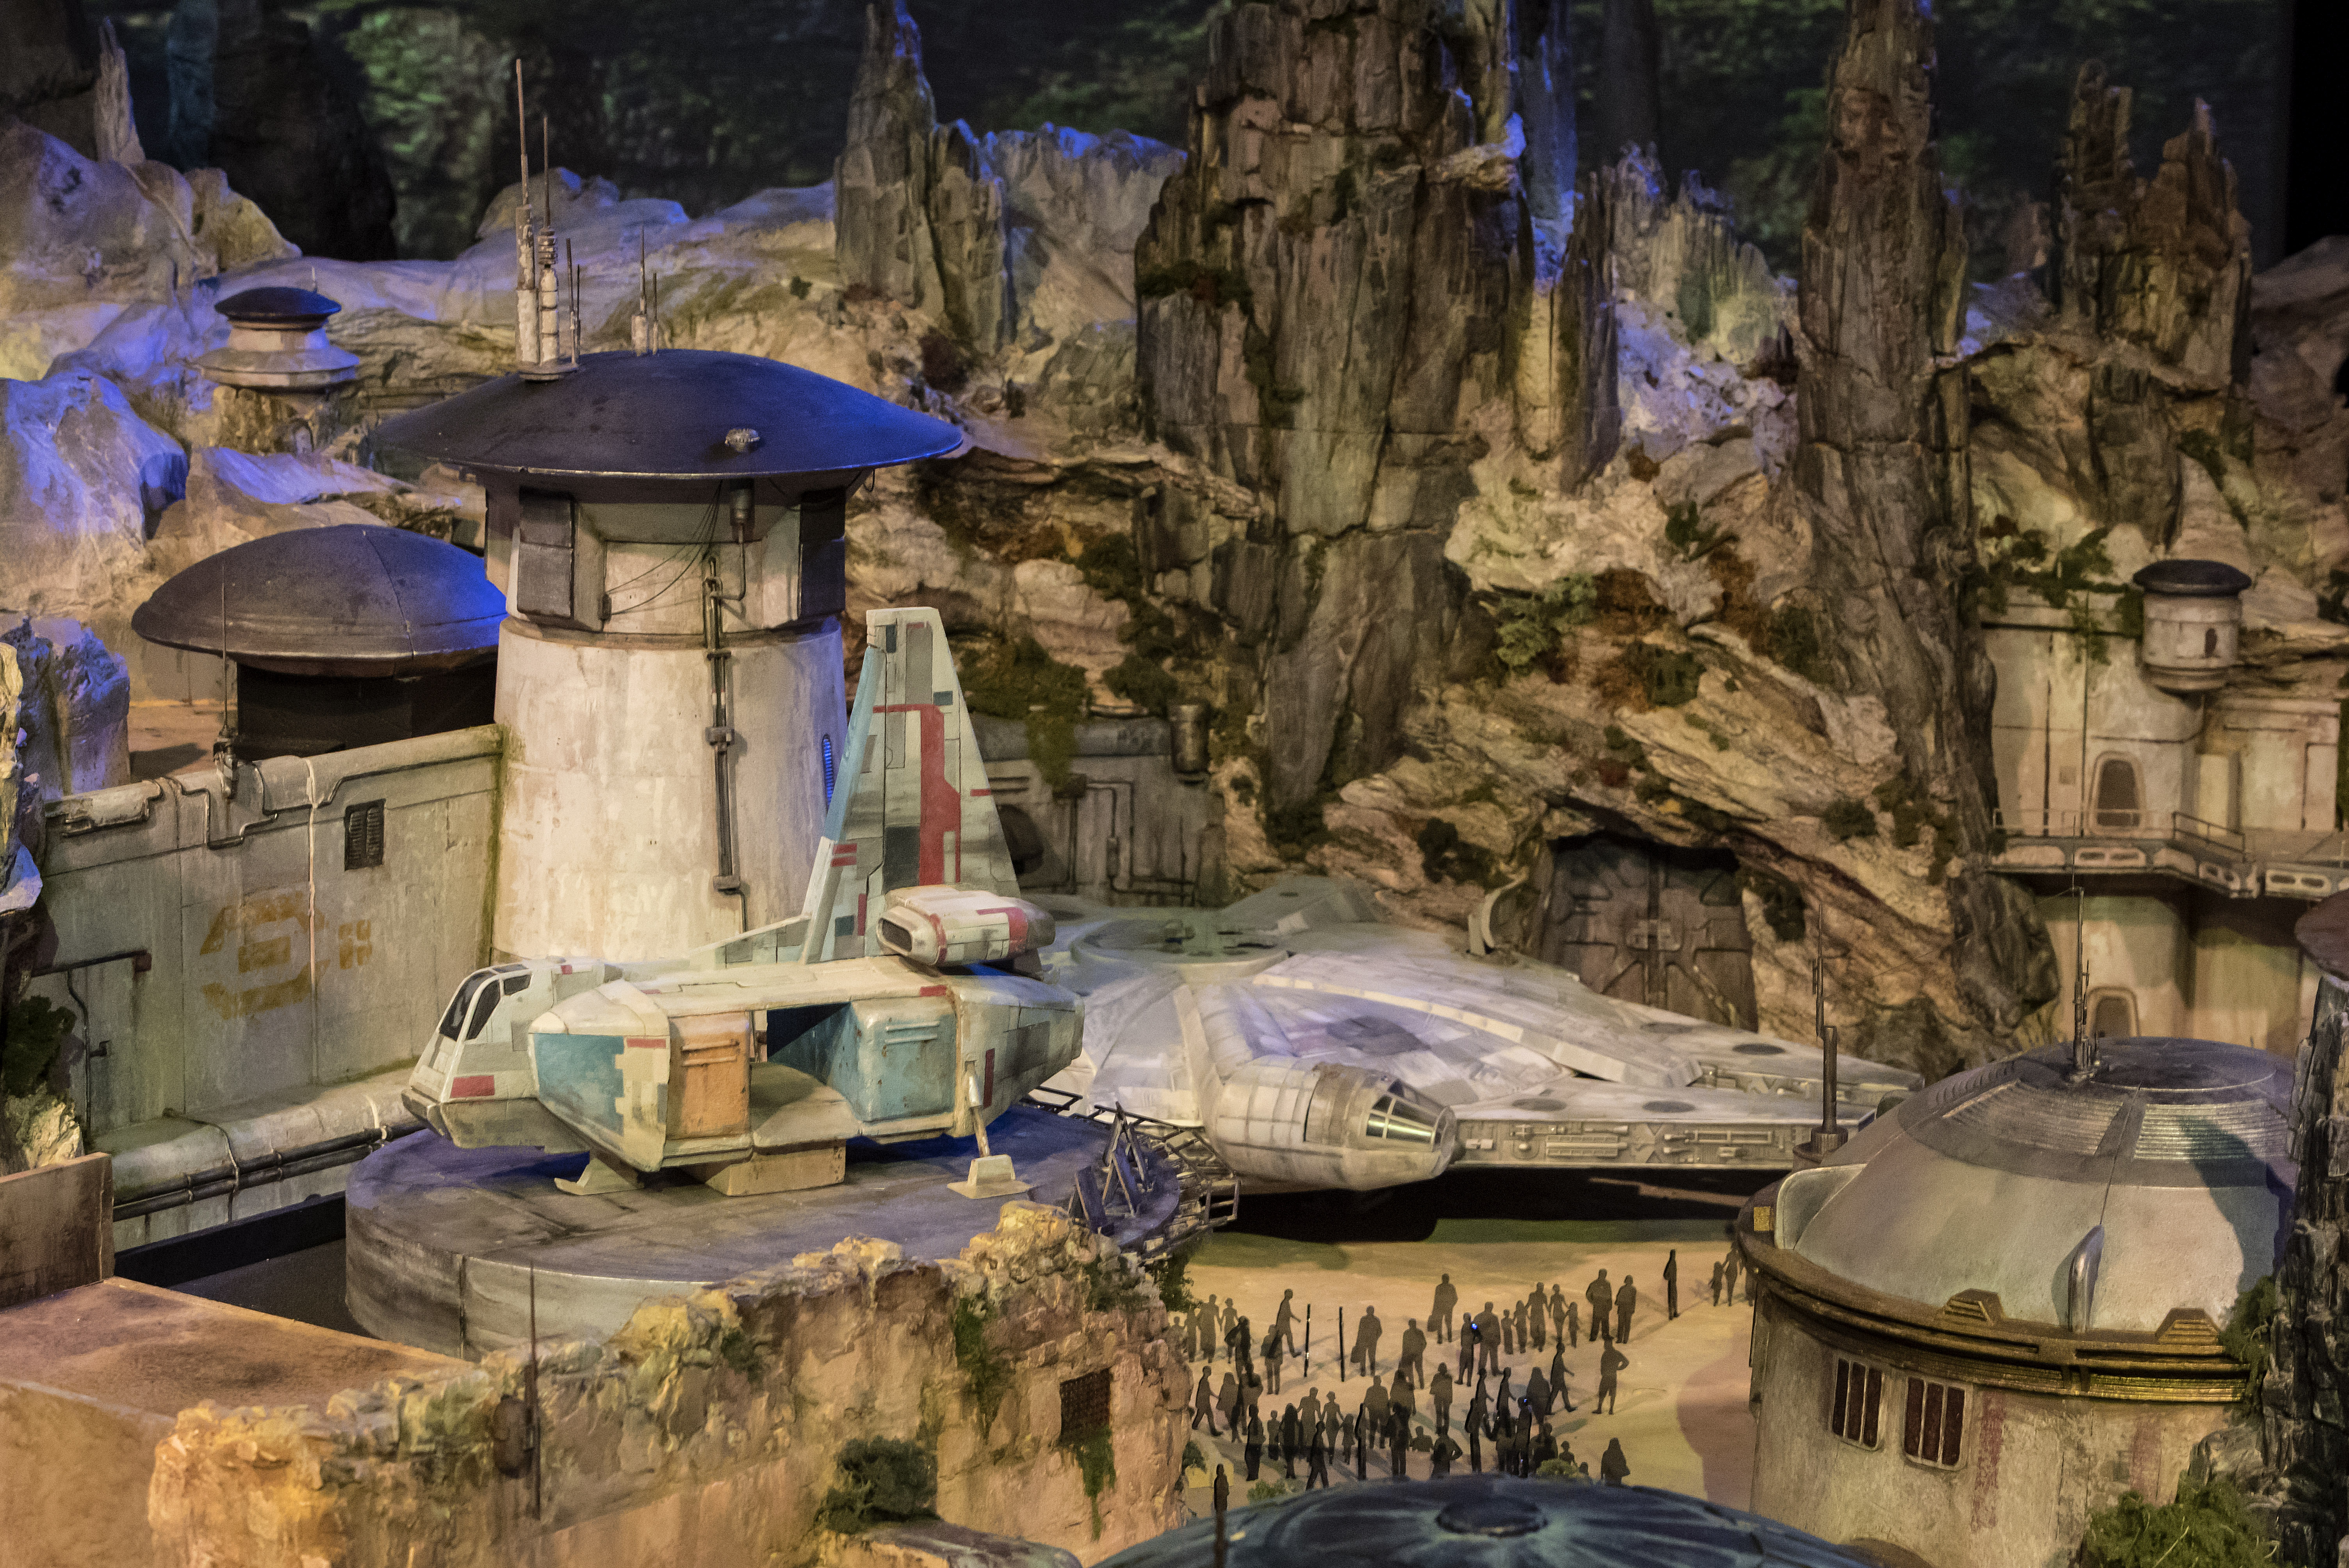 The fully detailed model of the Star Wars-themed park, under development at Disneyland in Anaheim, Calif., remains on display in Walt Disney Parks and Resorts 'A Galaxy of Stories' pavilion throughout D23 Expo at the Anaheim Convention Center. The exhibition gives D23 Expo guests an up-close look at what's to come on this never-before seen planet.